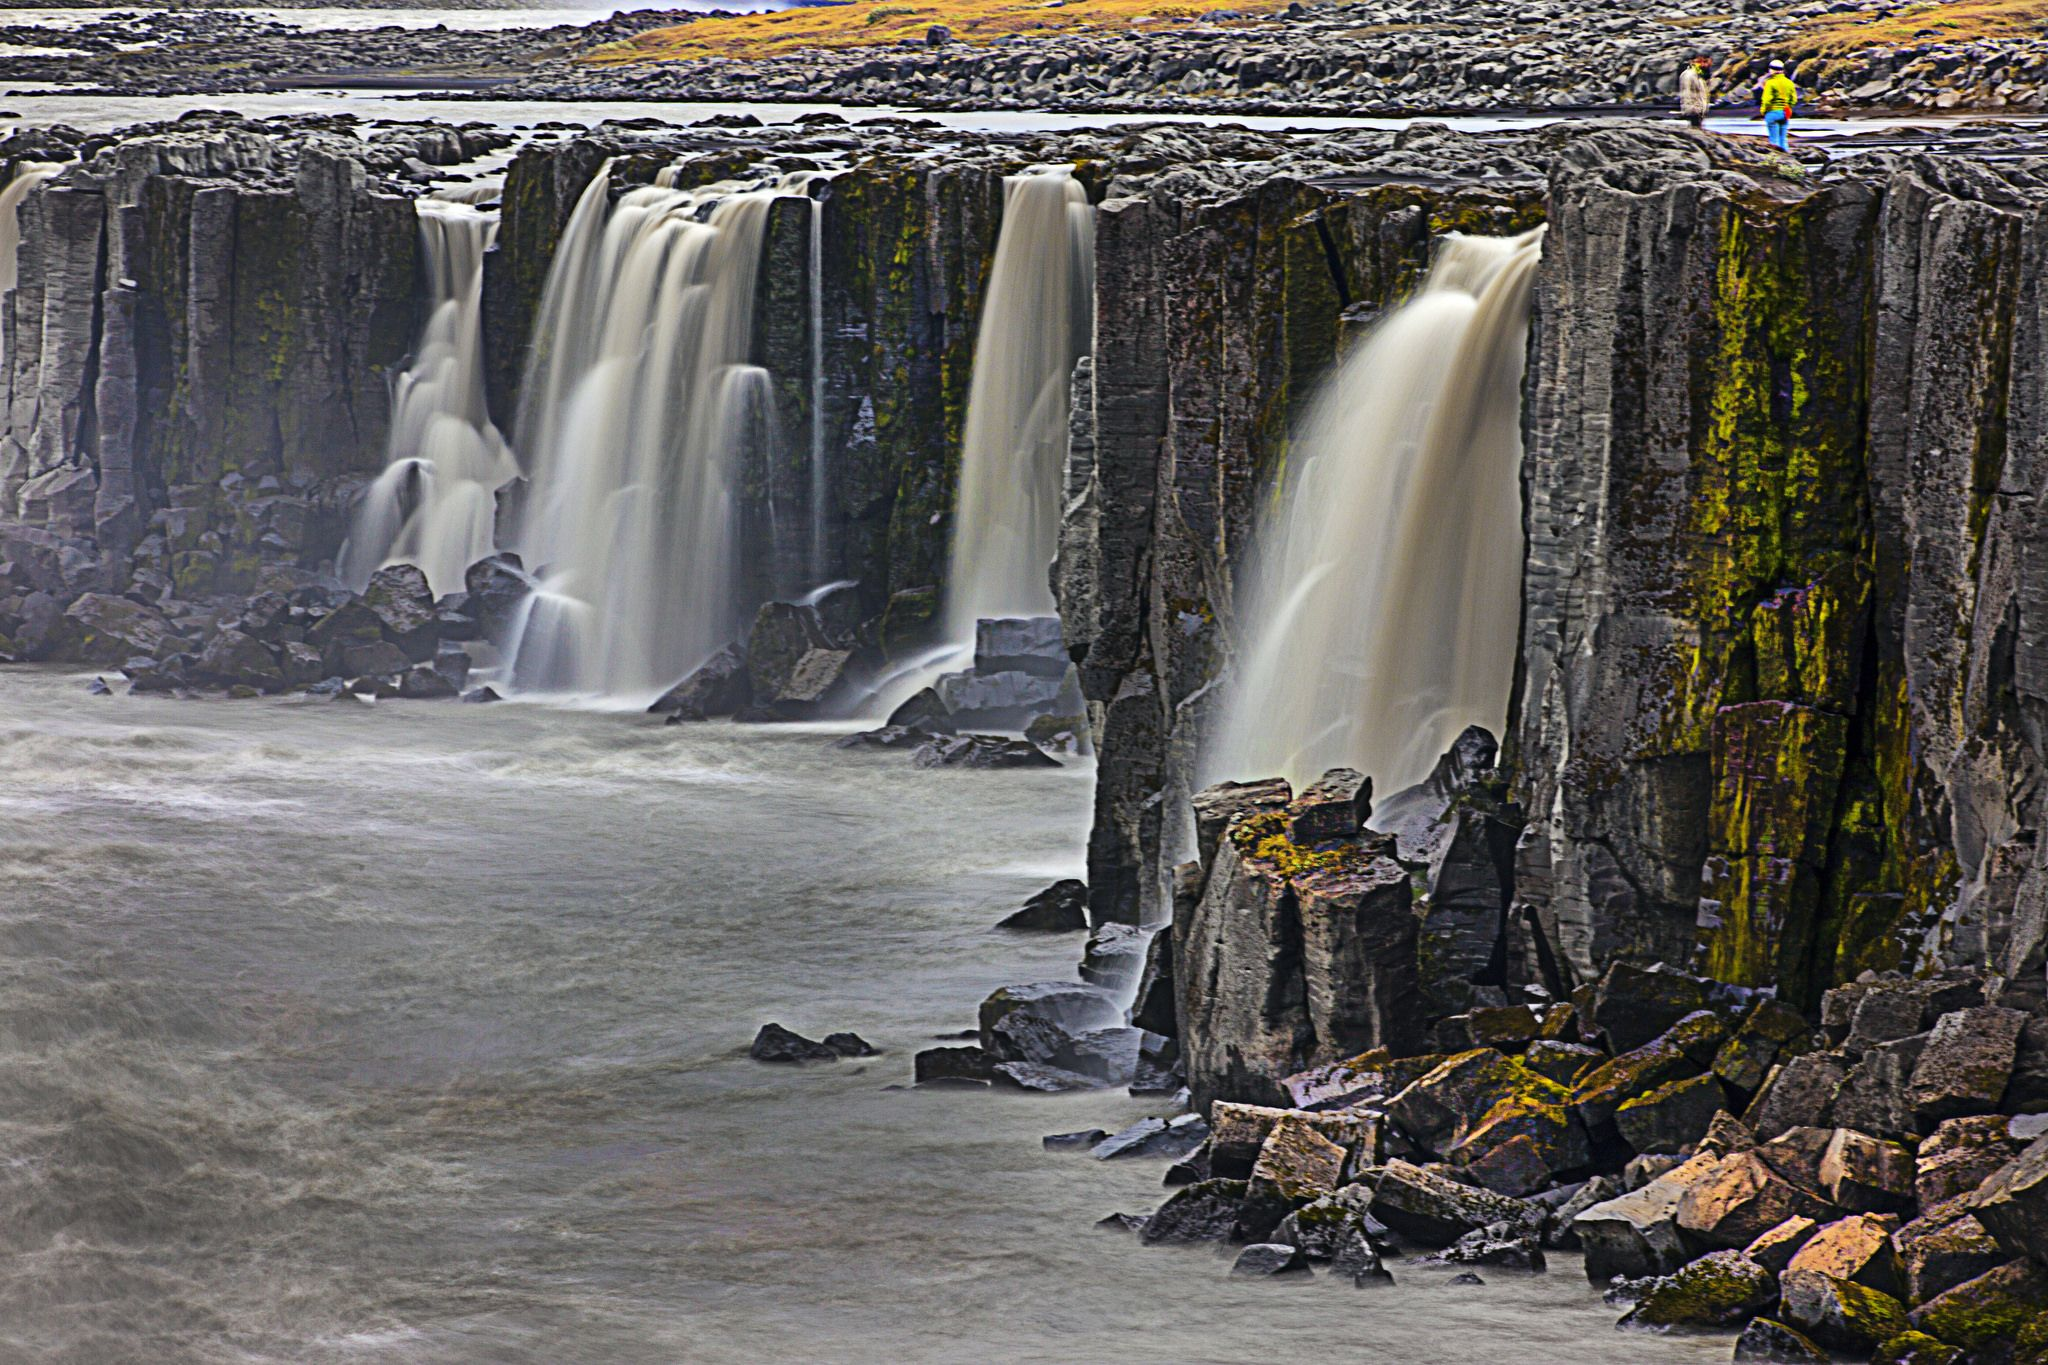 https://flic.kr/p/pSdryC | Selfoss Waterfall - Iceland | Selfoss is a waterfall in the river Jökulsá á Fjöllum in the north of Iceland which drops over some waterfalls about 30 km before flowing into Öxarfjörður, a bay of the Arctic Sea. A few hundred meters downstream of the Selfoss waterfall (11 m high), the Dettifoss waterfall is situated, the most powerful waterfall of Europe.